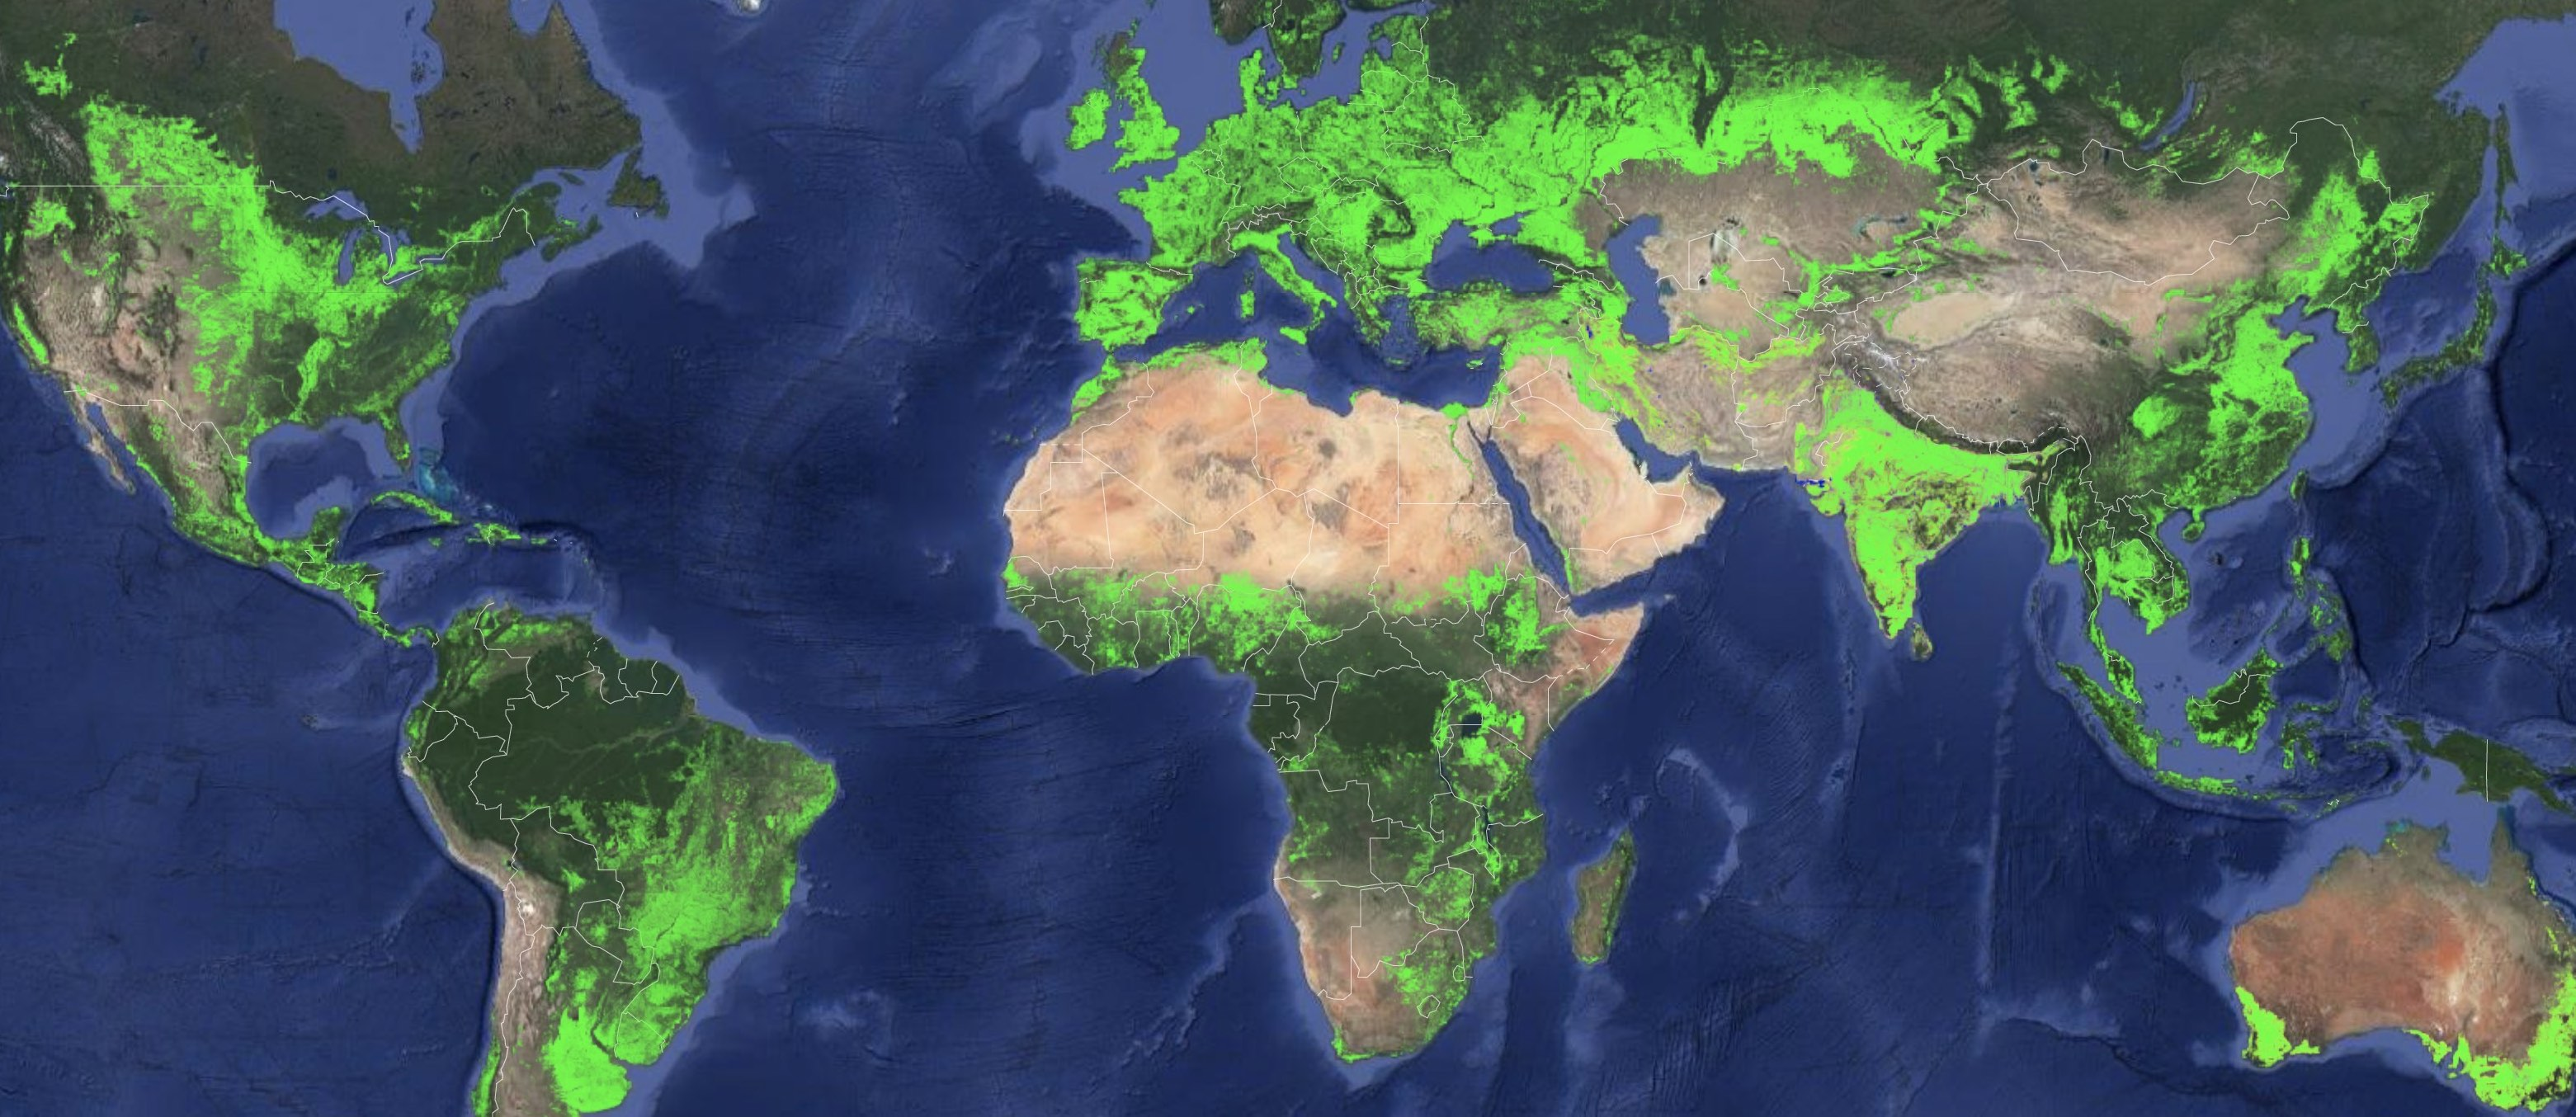 Global map shows where croplands are located, in light green.